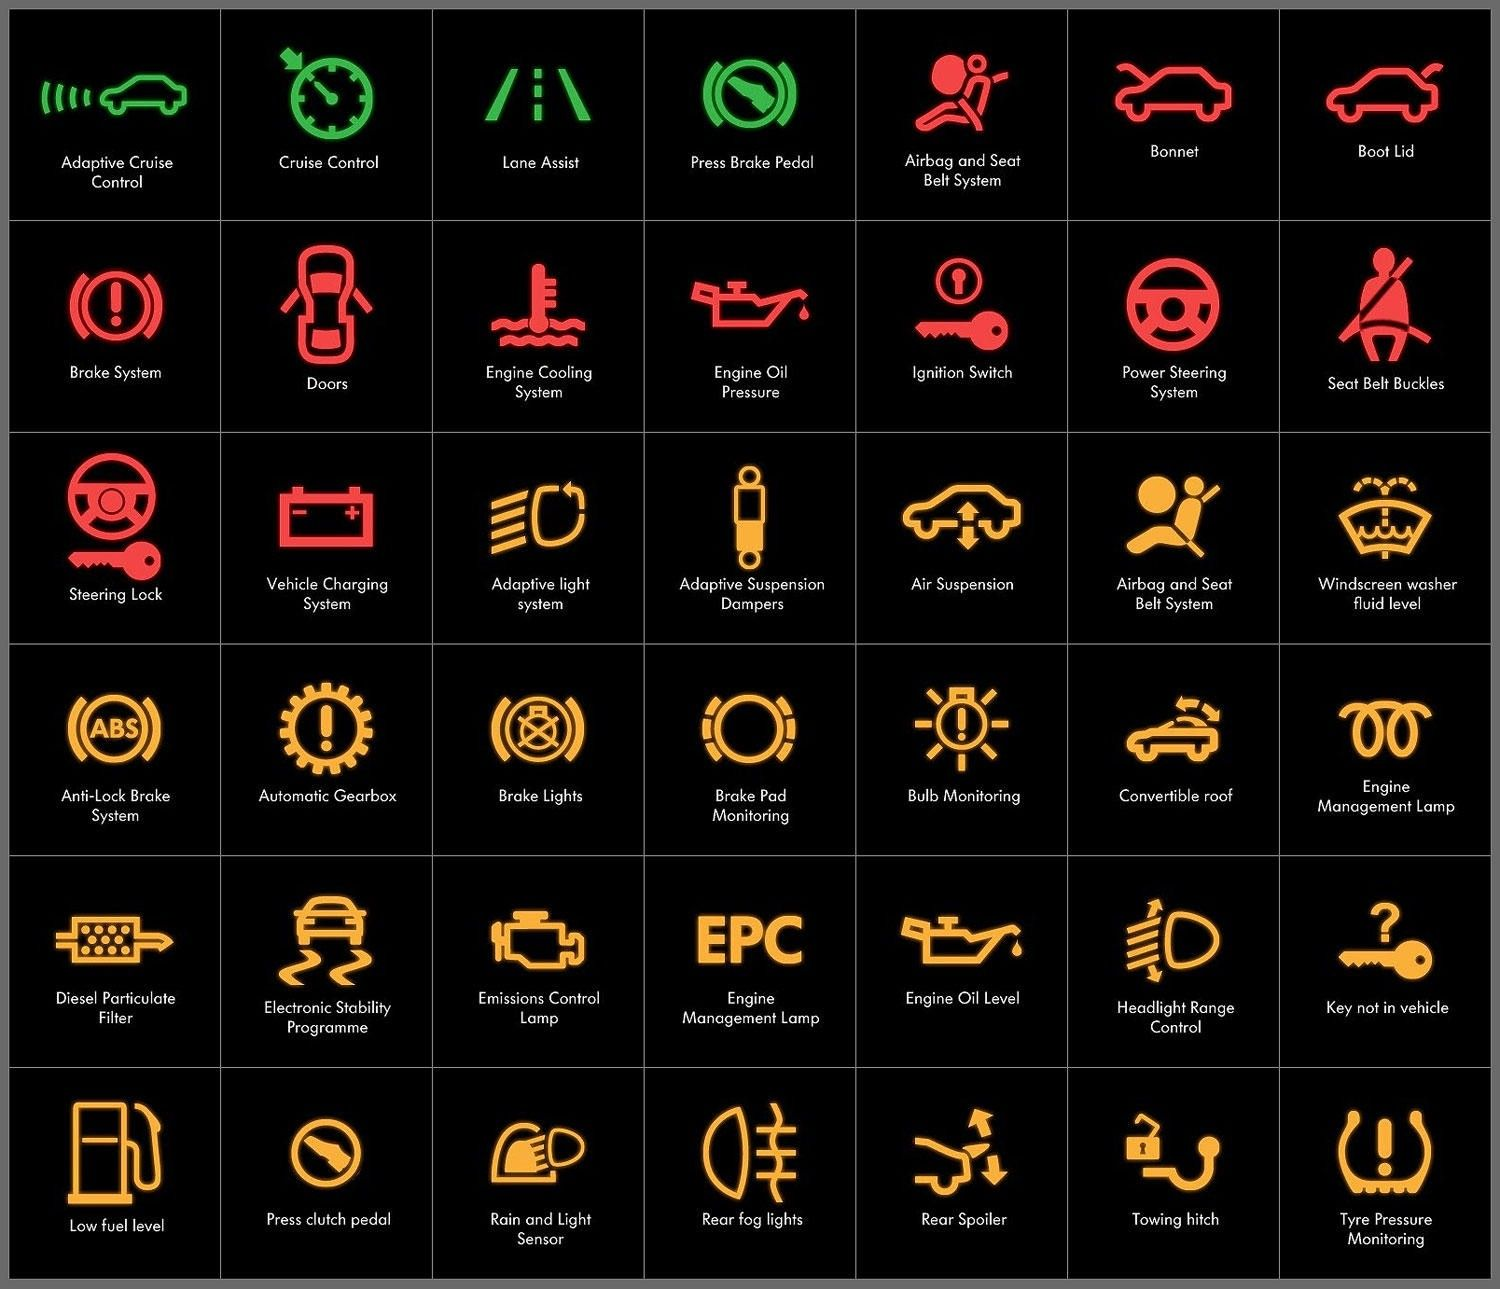 My Girlfriend Broke Up With Me On New Years So Here Are Some Symbols On Your Dashboard Indicating What S Going On With Your Car Car Hacks Car Symbols Automotive Mechanic